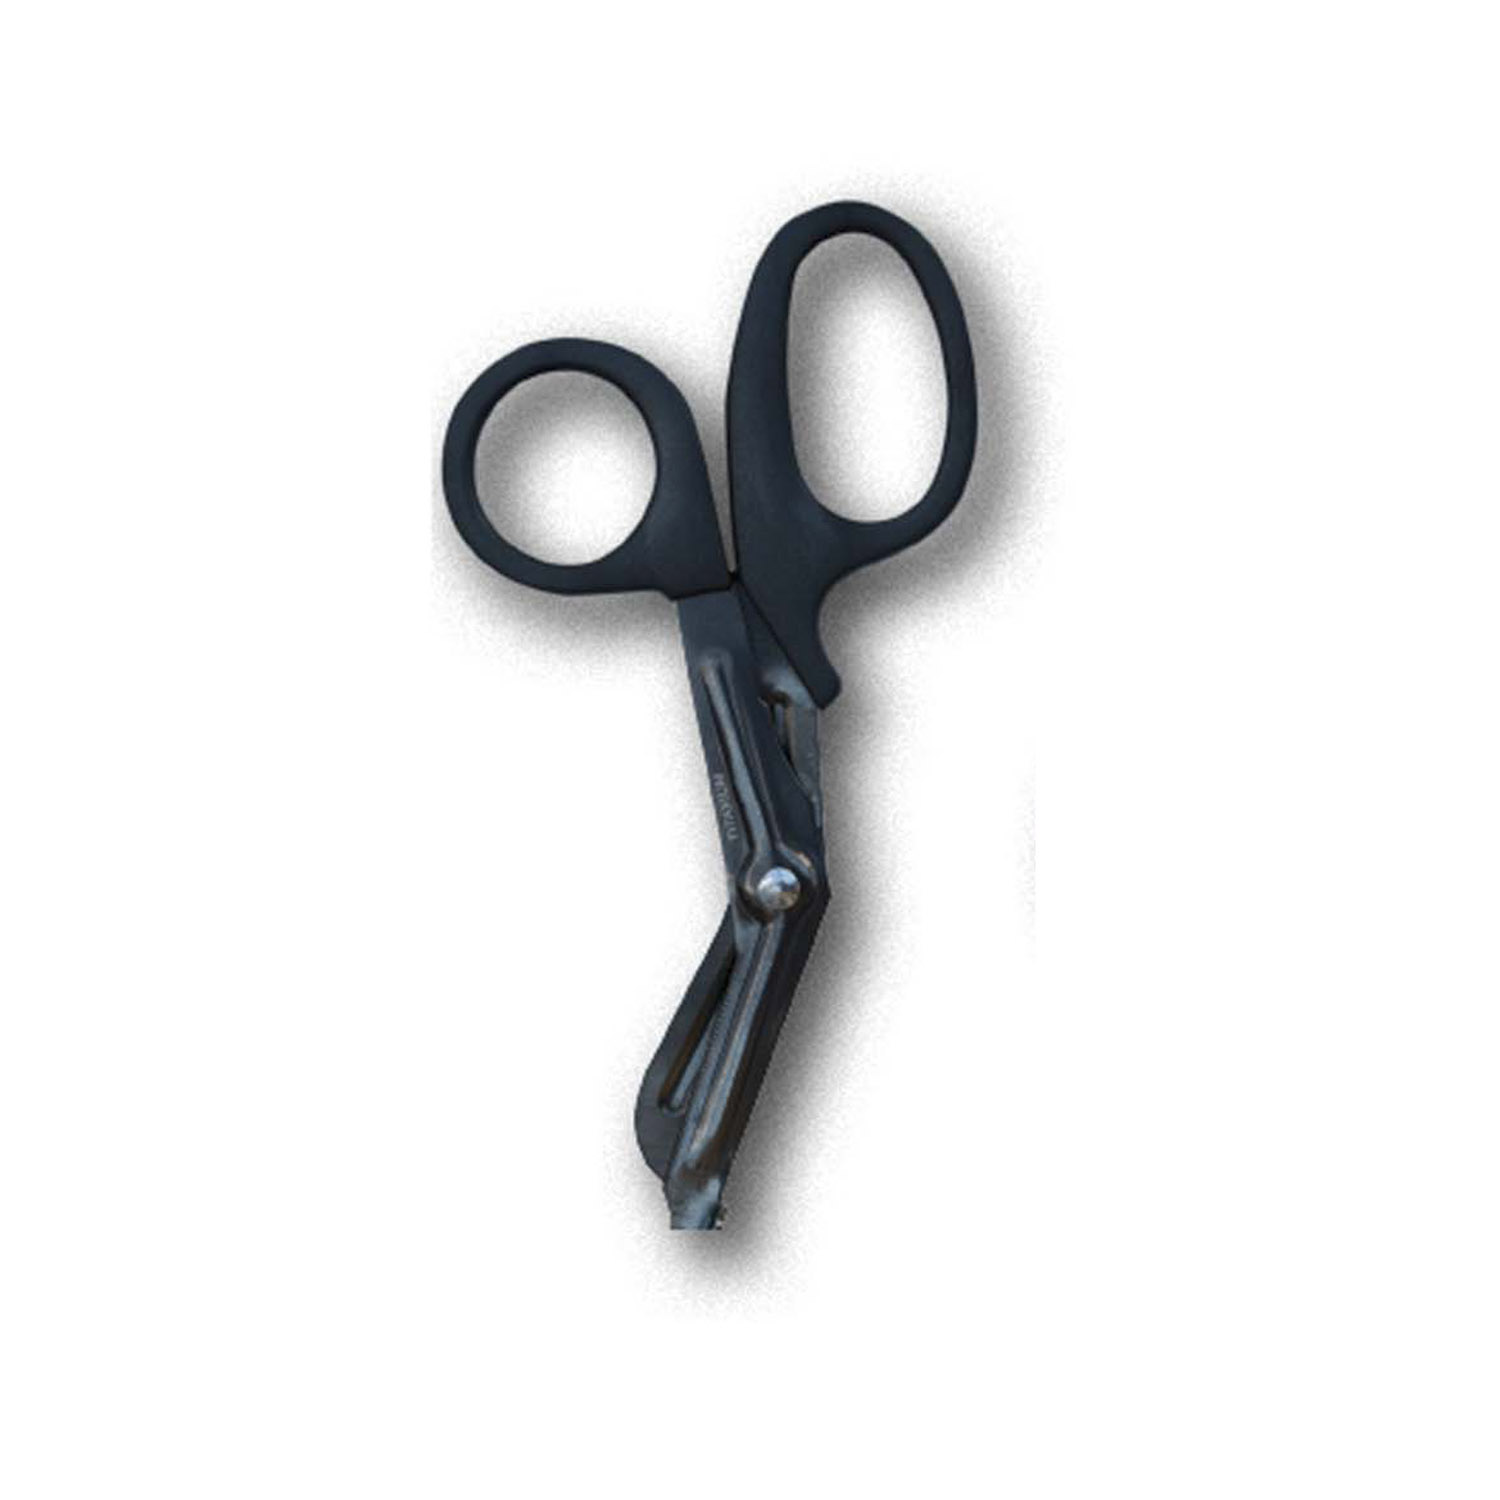 EMI Shear-Cut Medical Shears